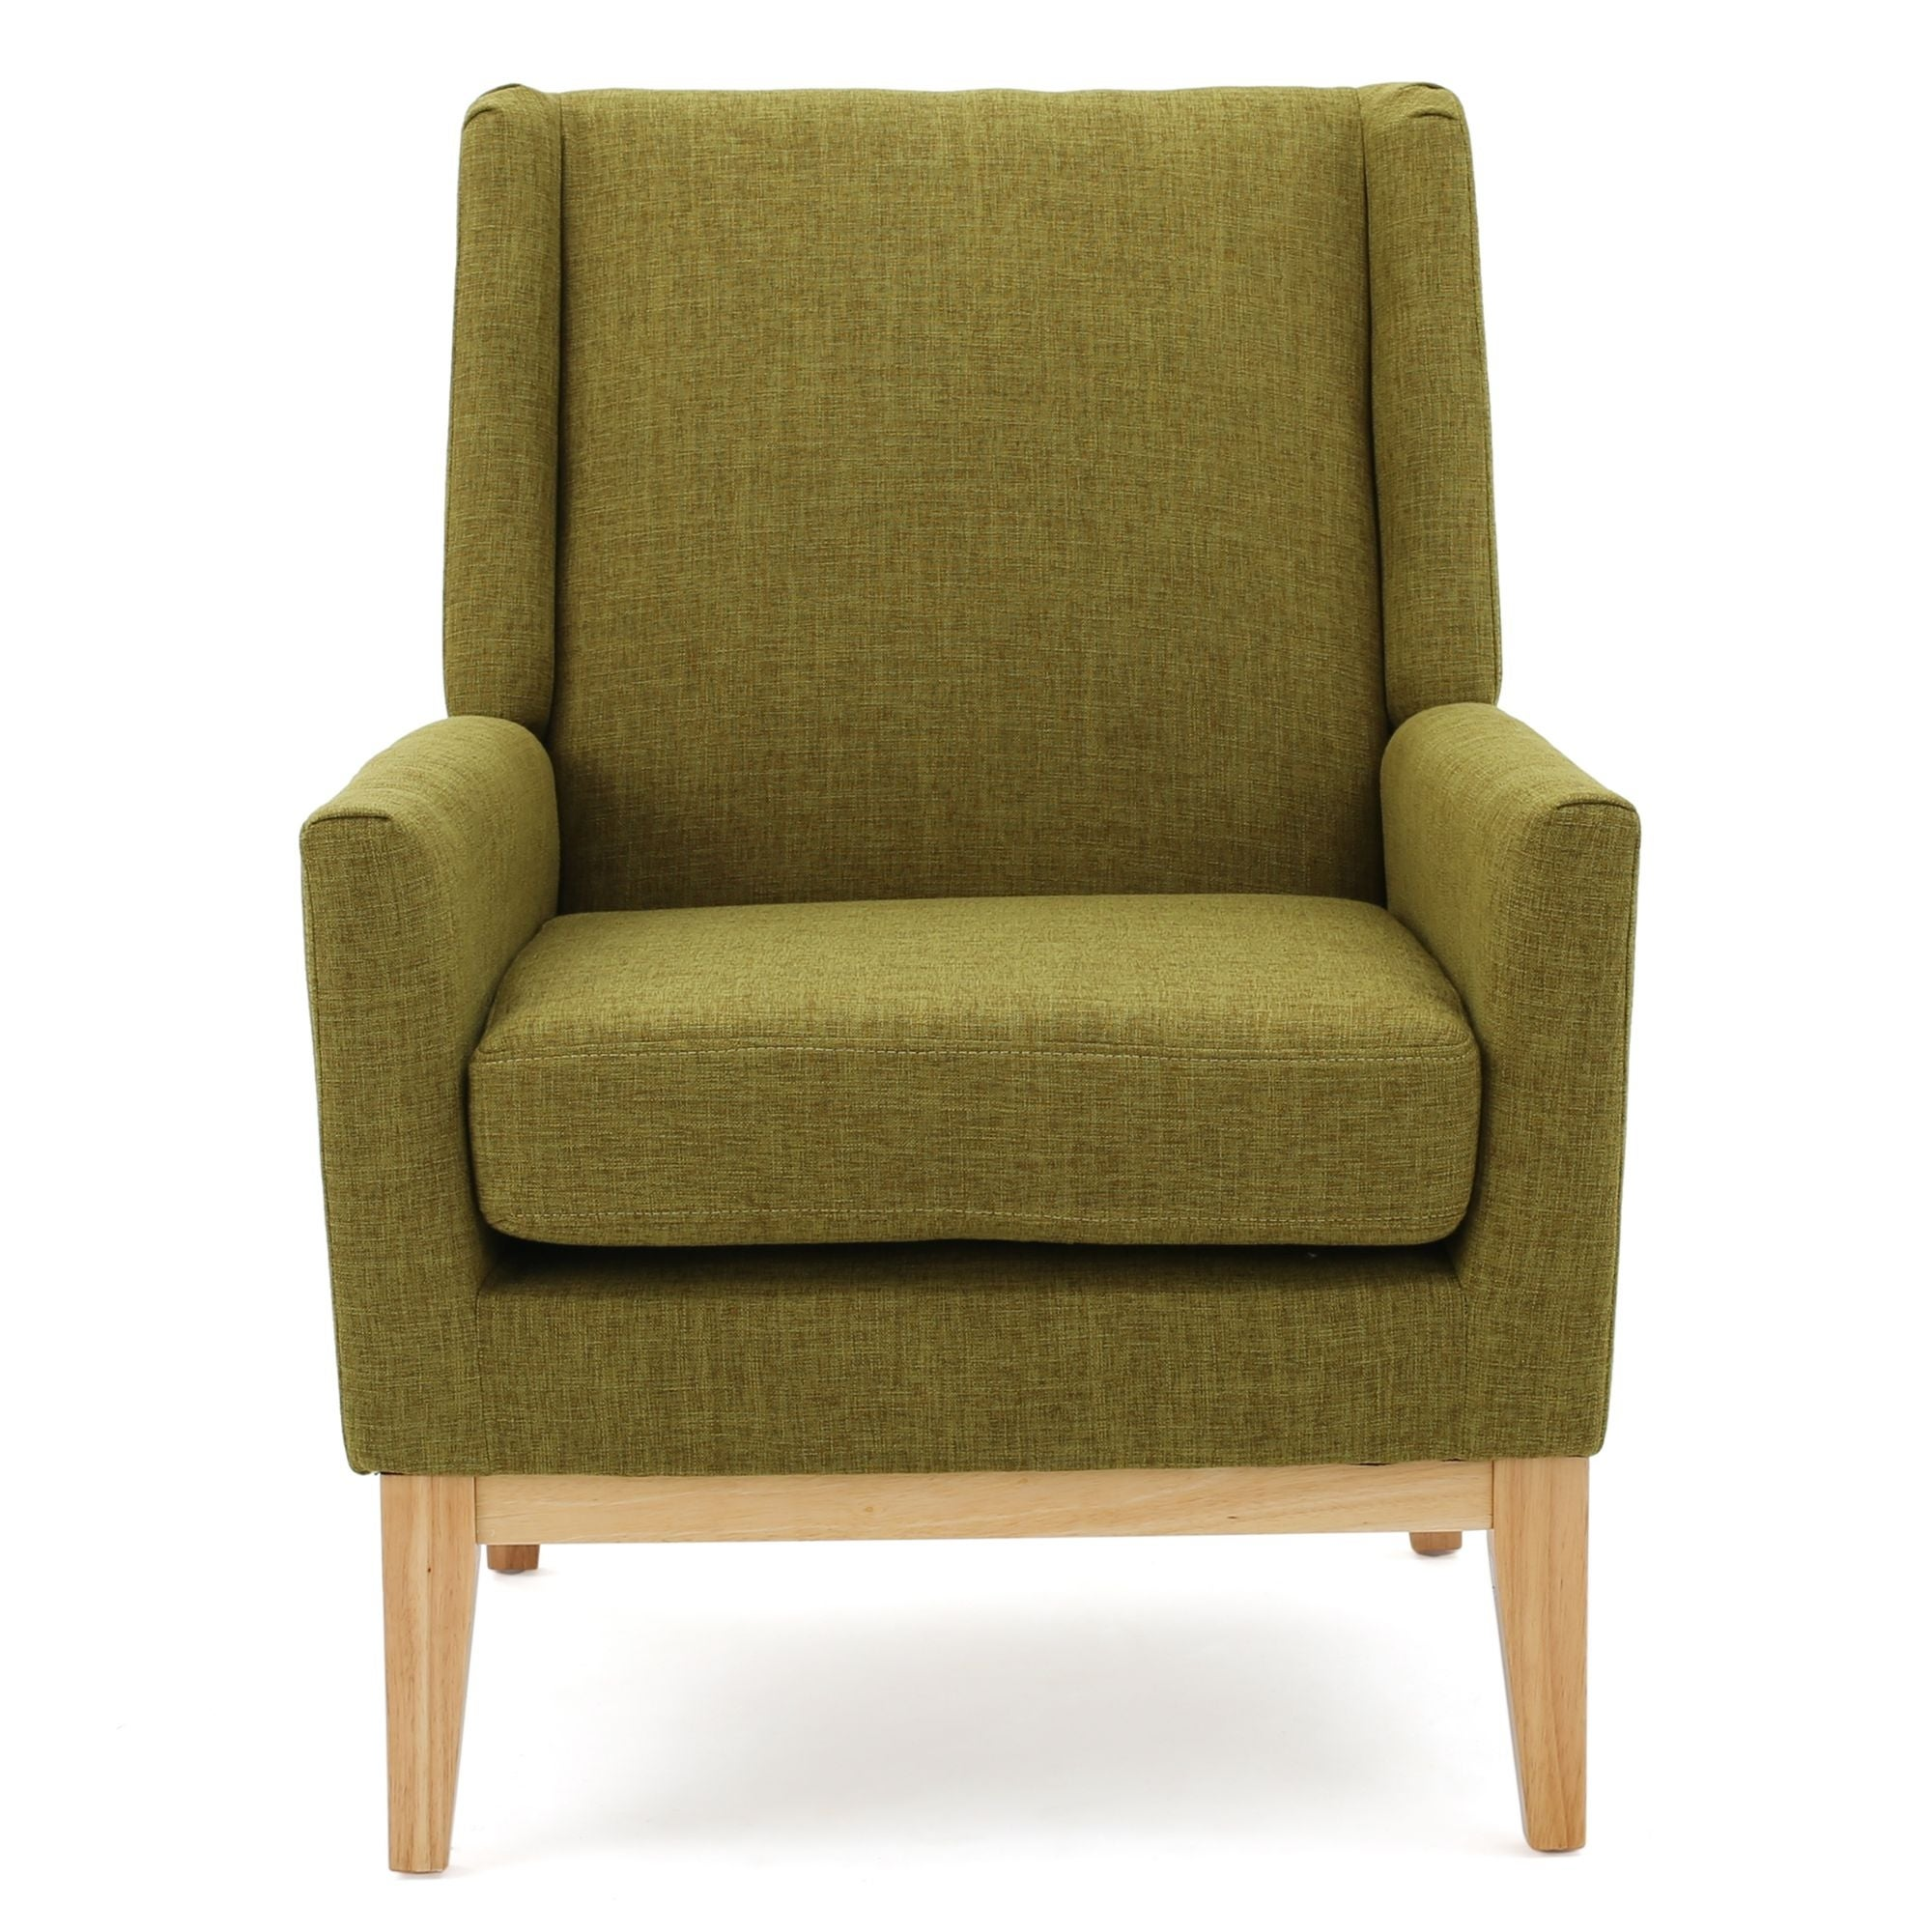 Picture of: Shop 36 50 Green And Brown Contemporary Accent Chair With Cushion On Sale Overstock 31990663